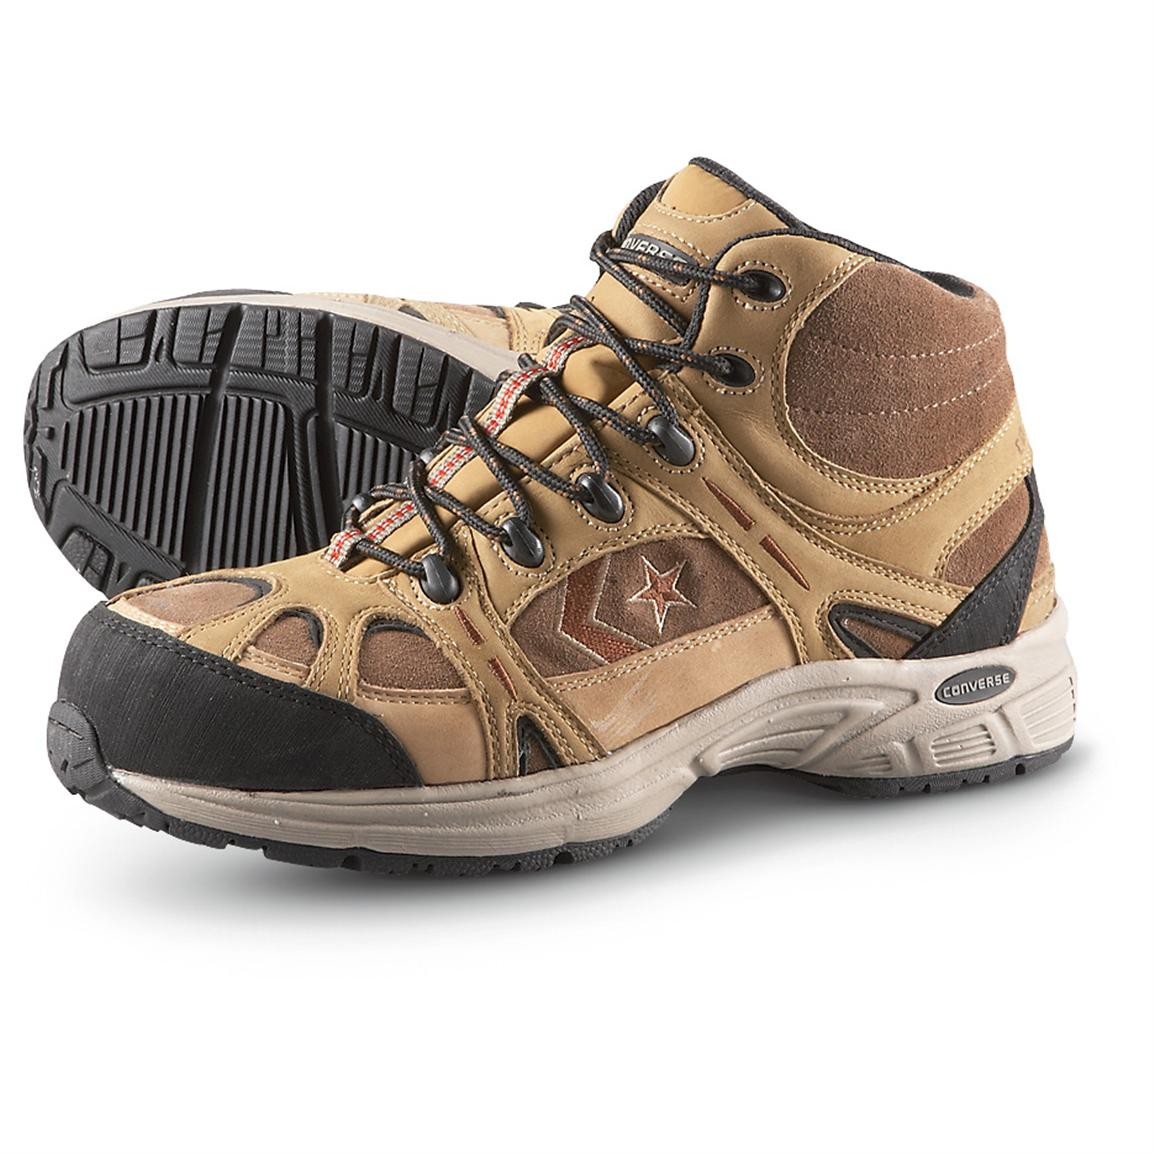 Men's Converse® Waterproof Composite Toe Hikers, Tan